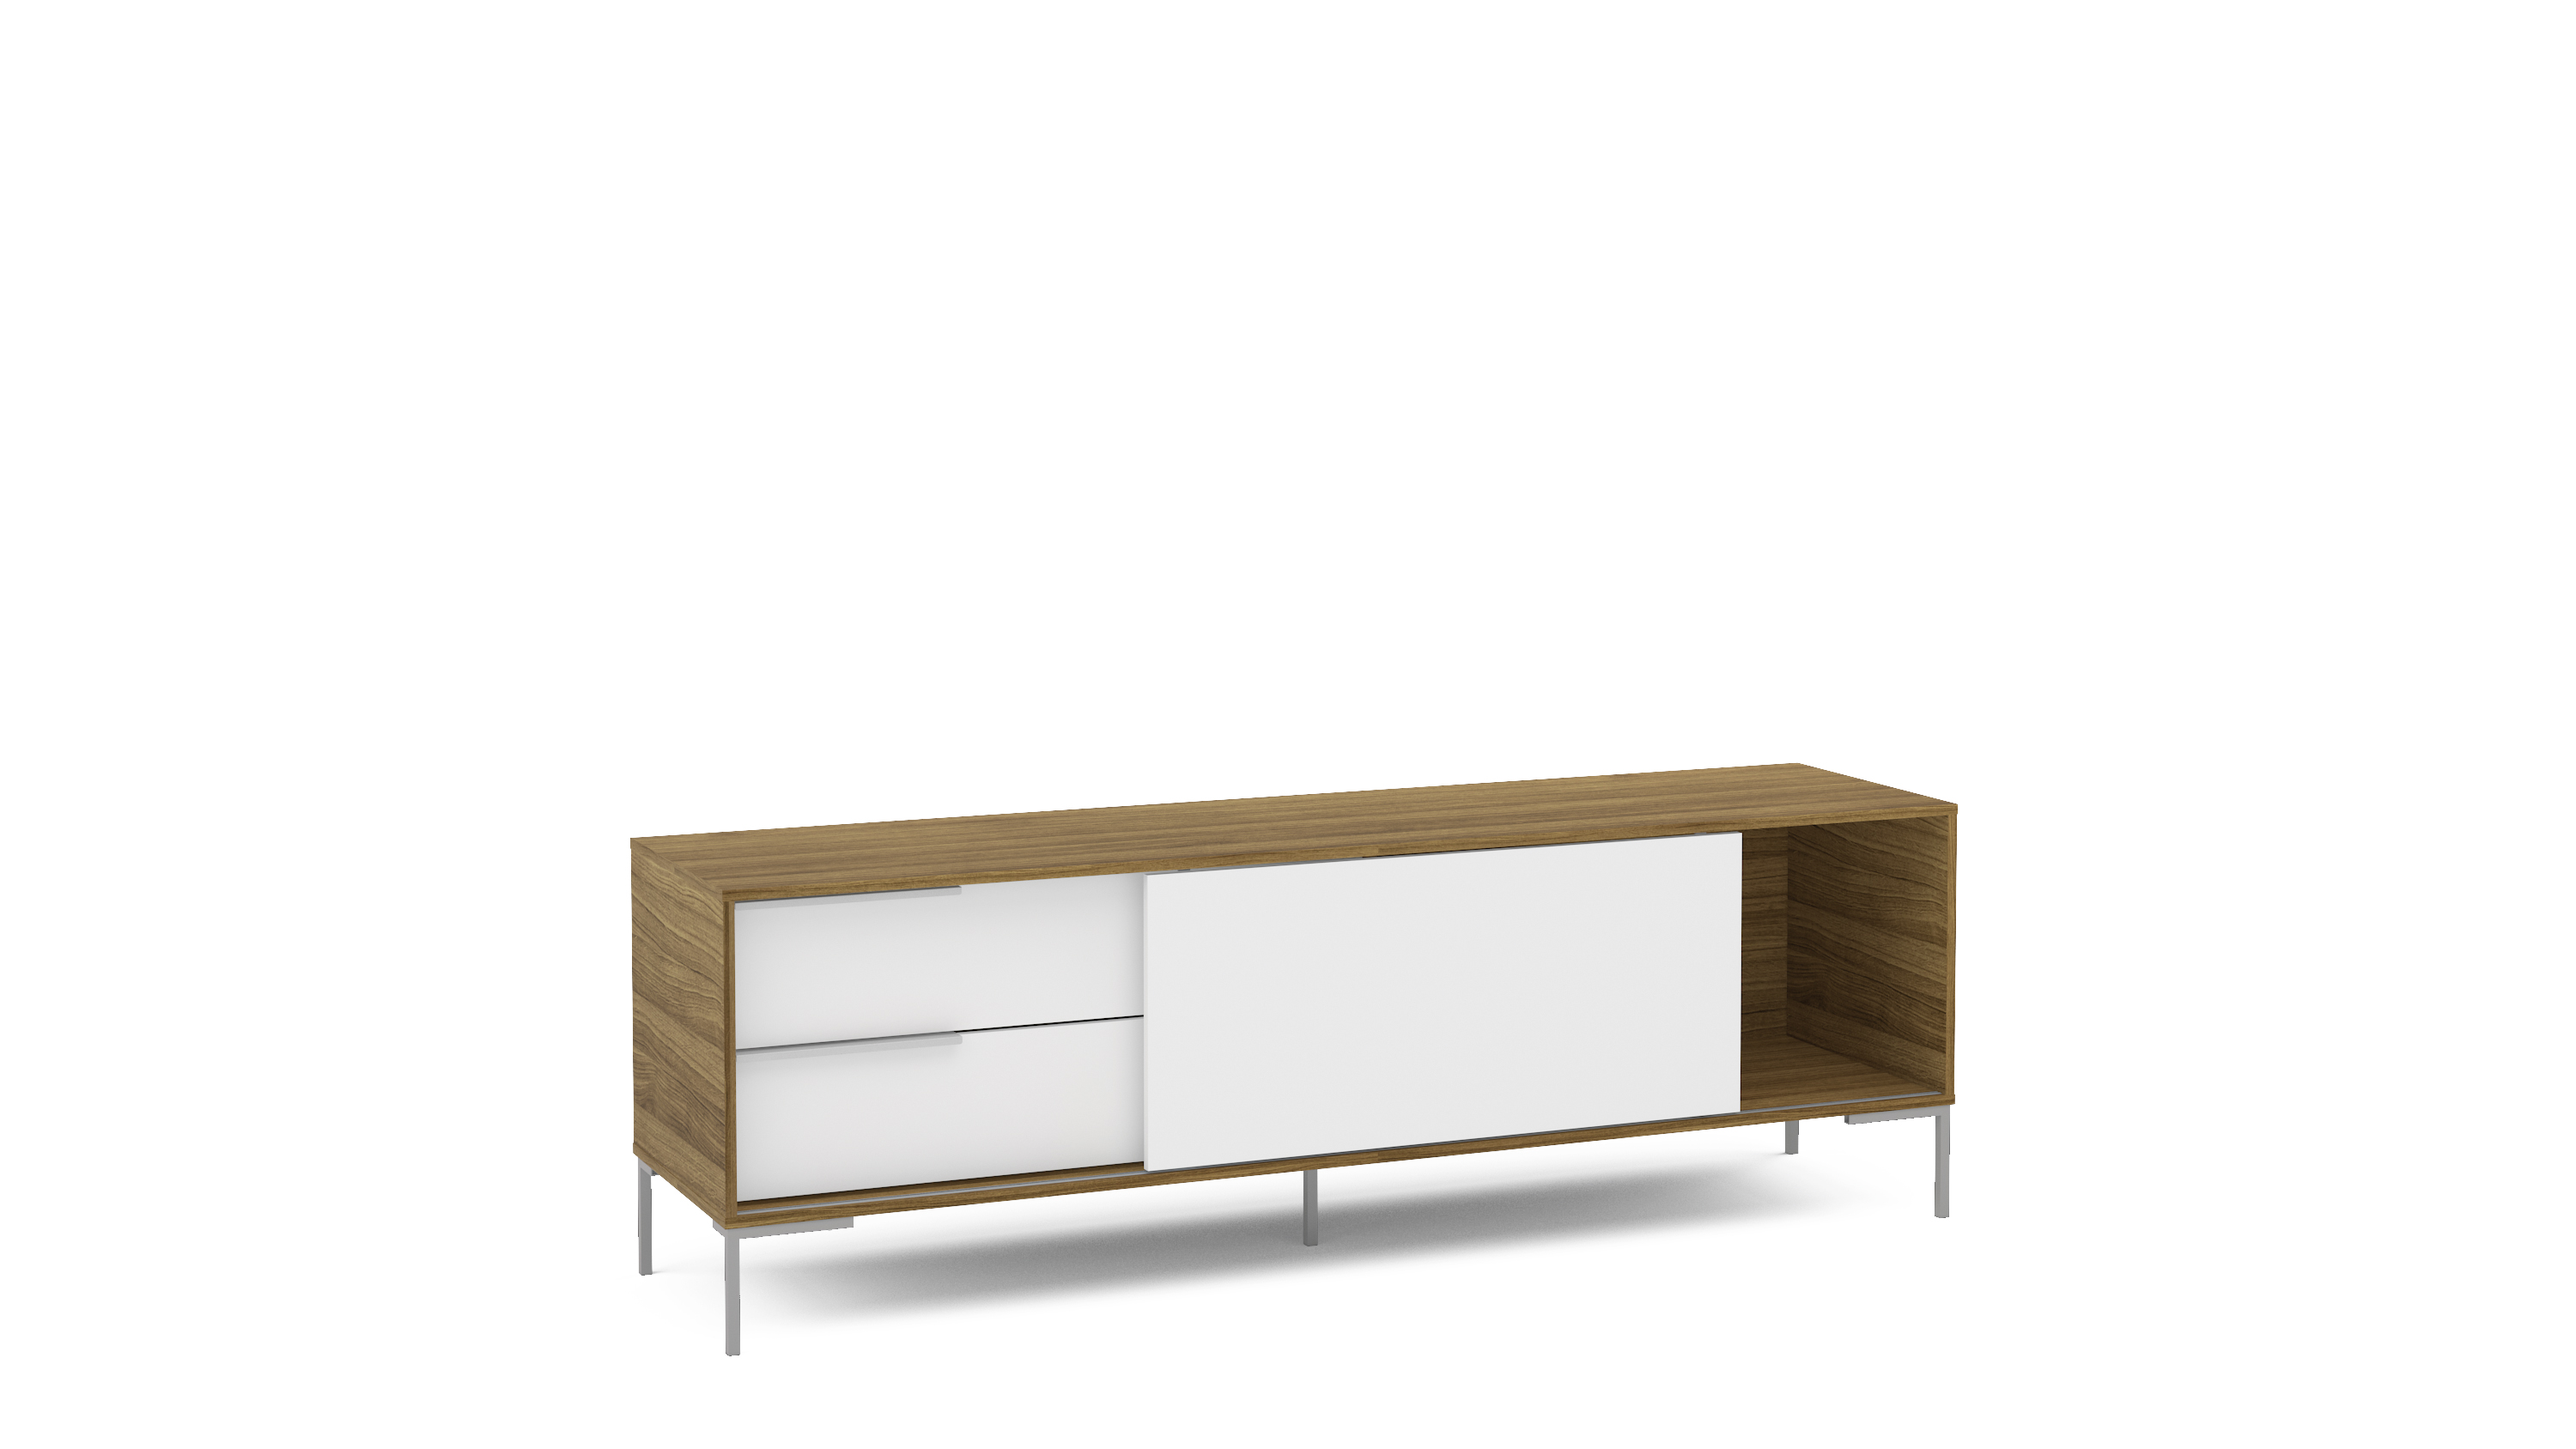 Polifurniture Denver 70 Inch Modern TV Stand, White And Walnut